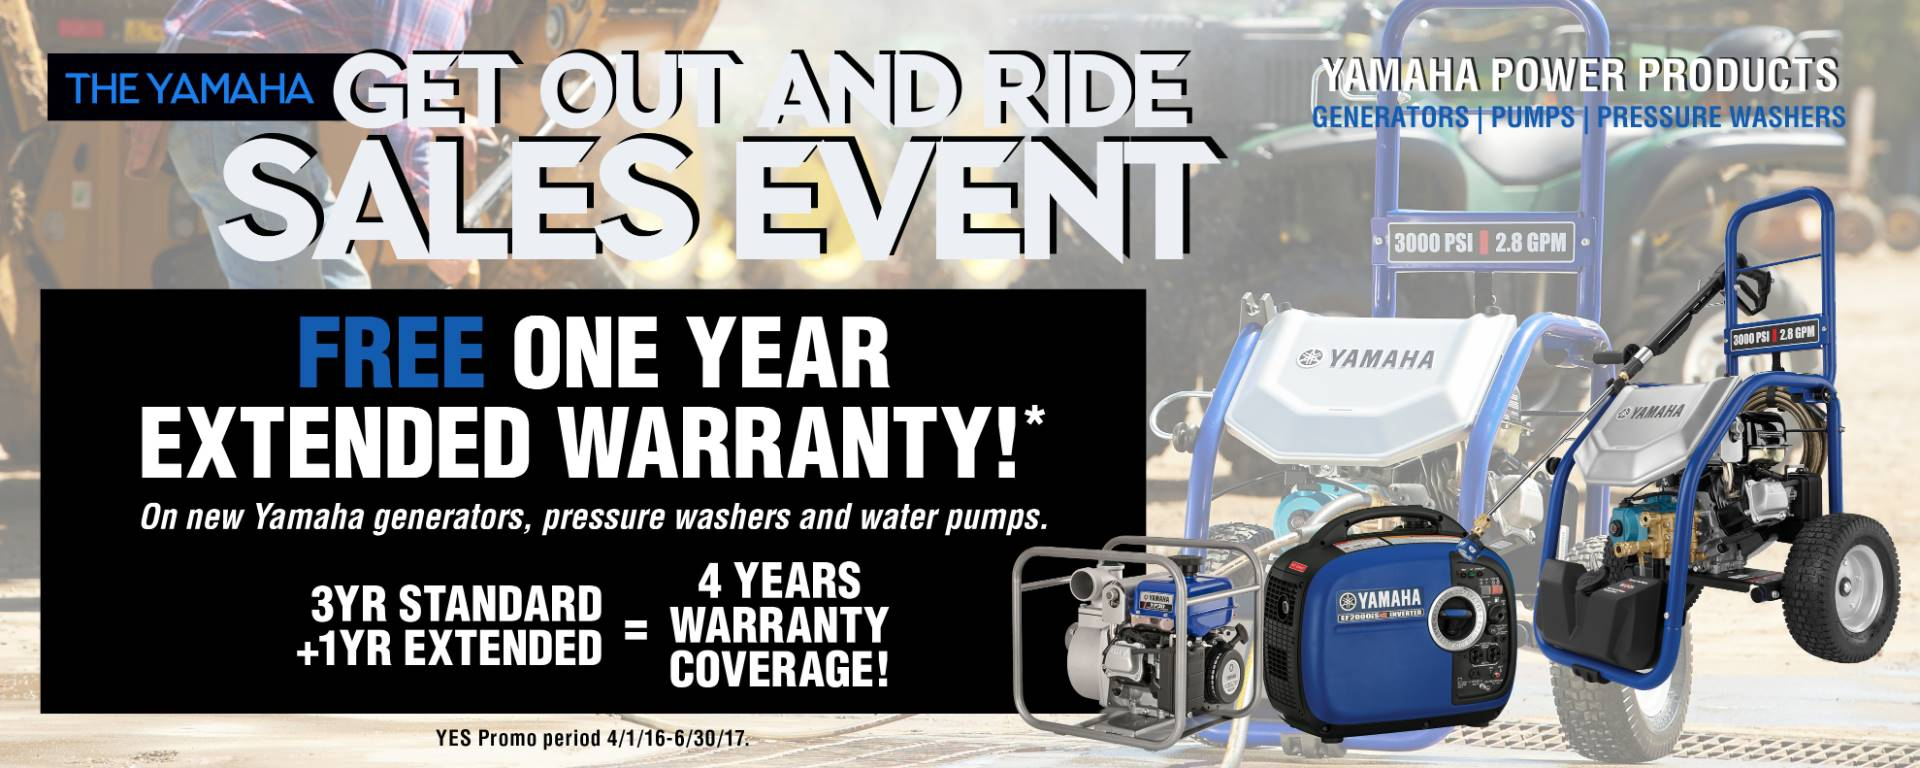 Yamaha Motor Corp., USA The Yamaha GET OUT AND RIDE SALES EVENT - Power Equipment - MY2014-2017